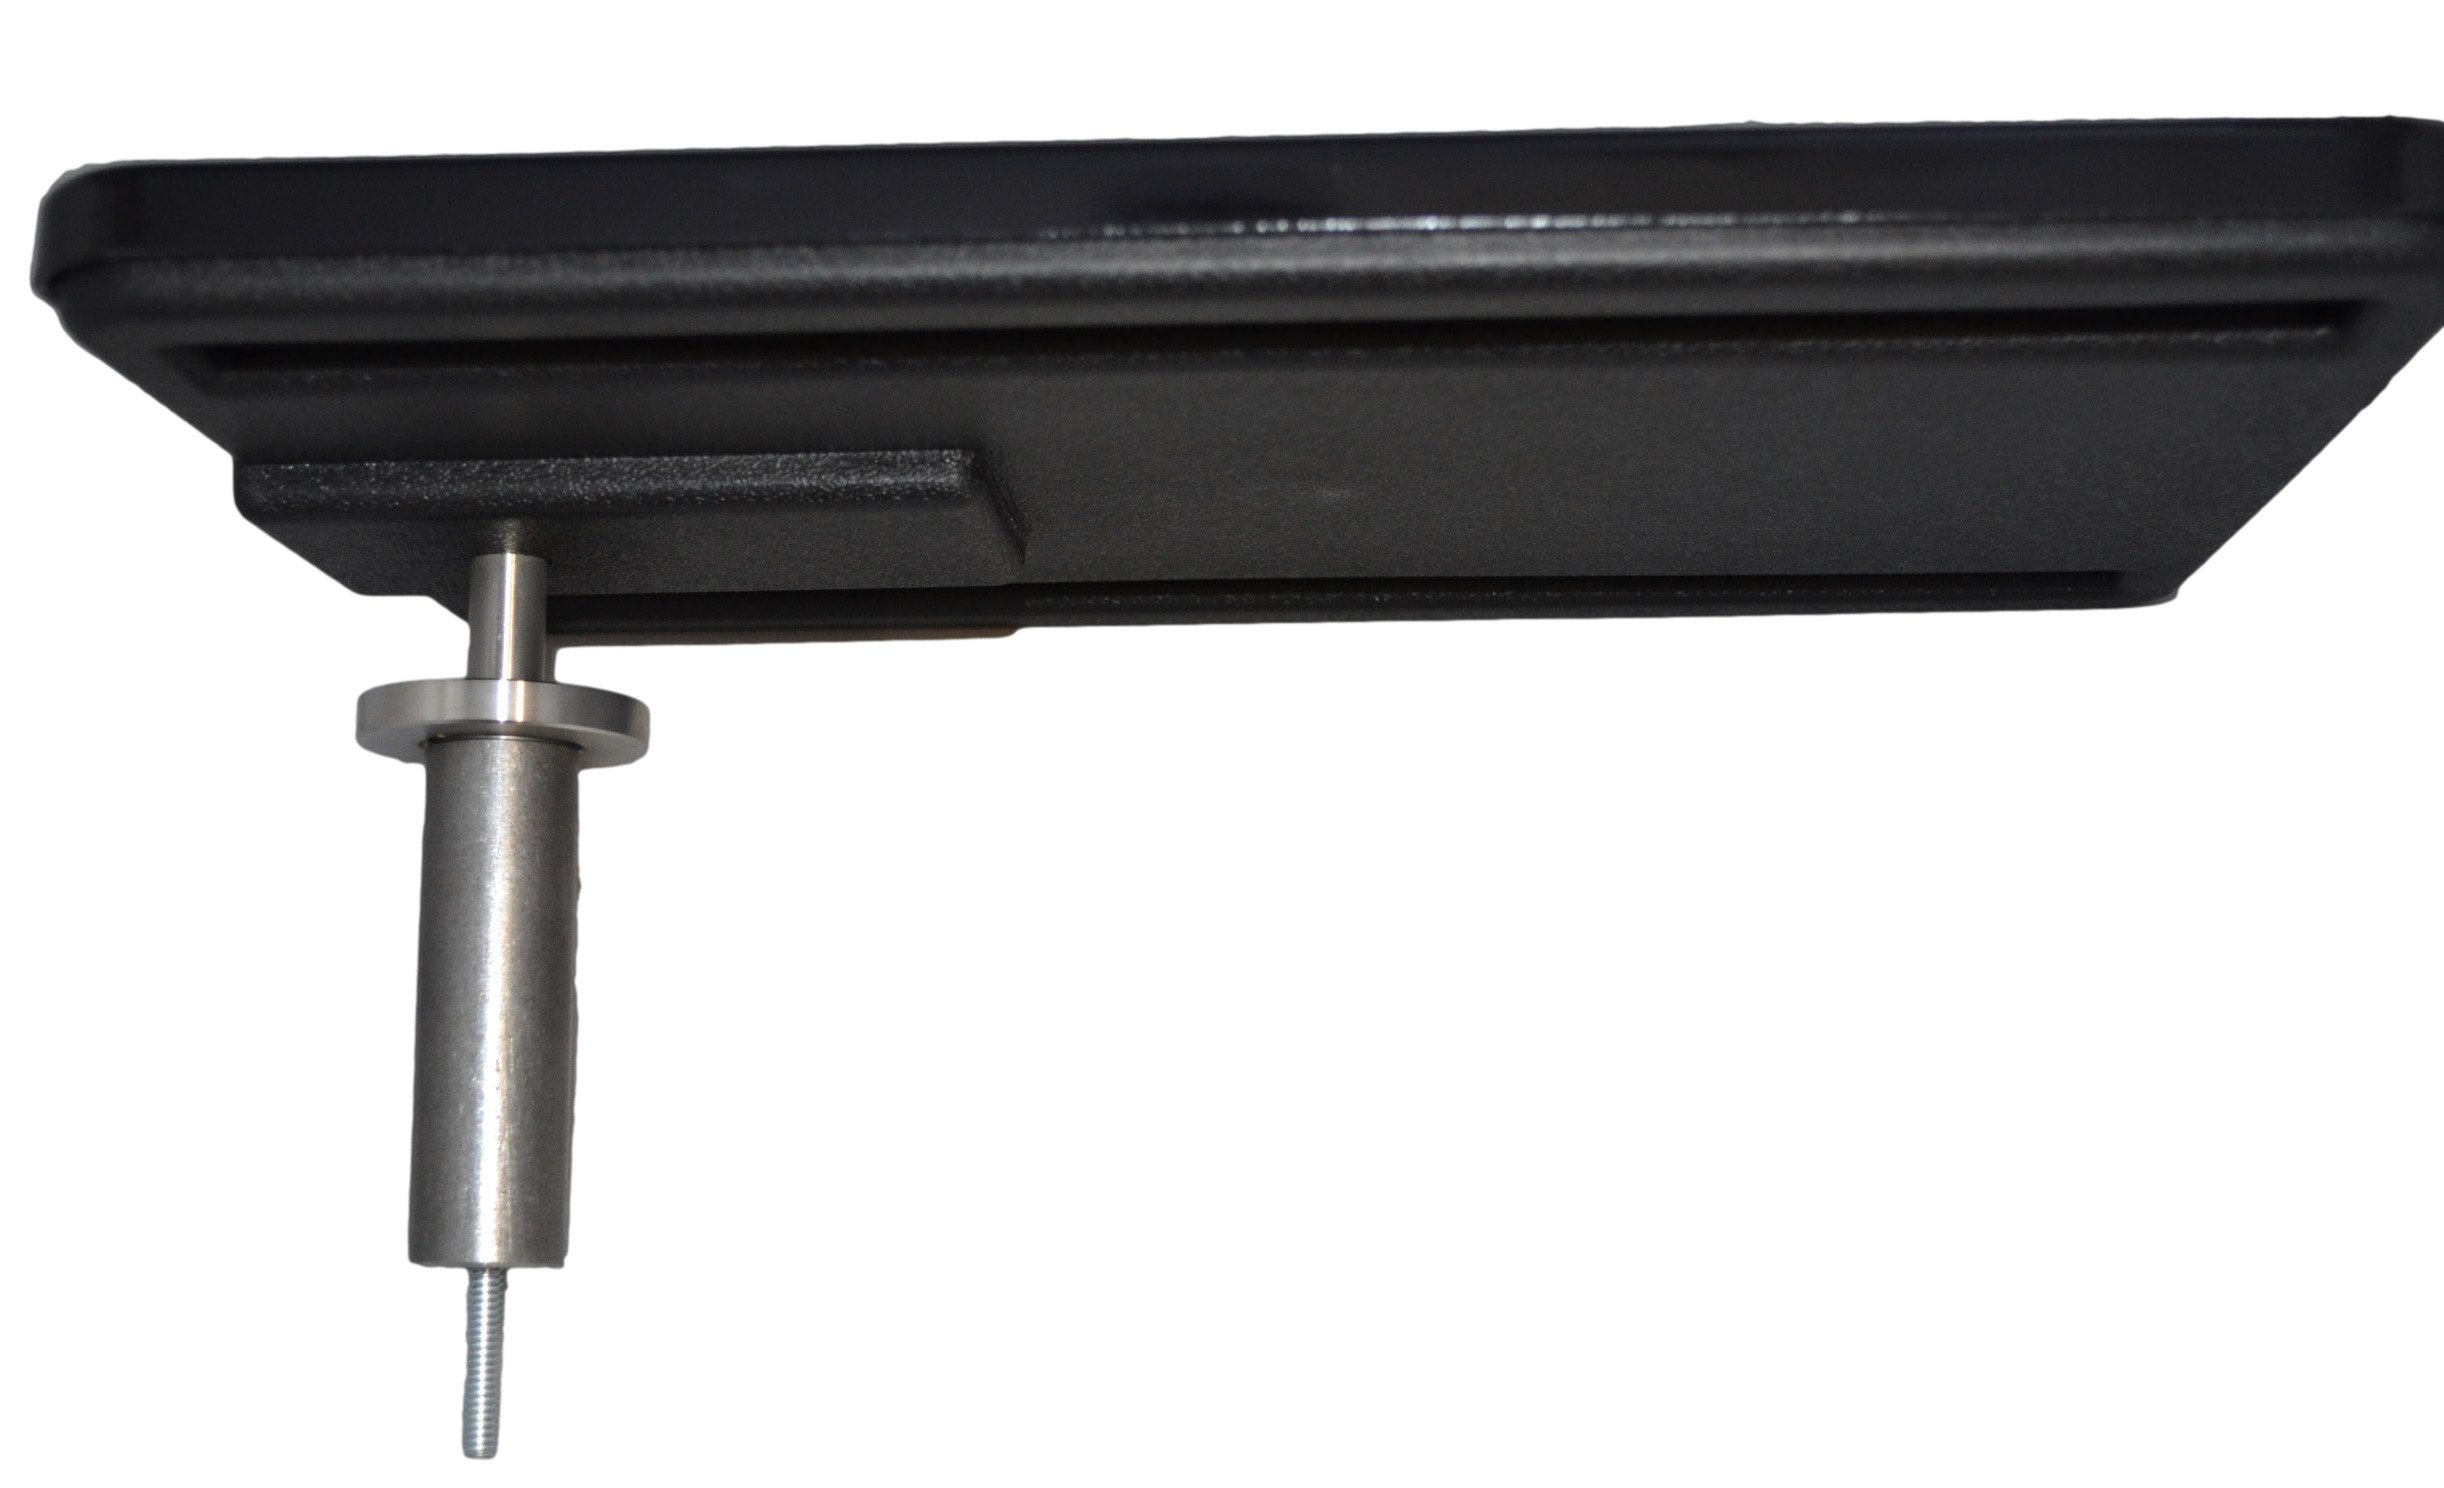 Recliner-Handles Table Top TV Tray Kit for Home Theater Seating